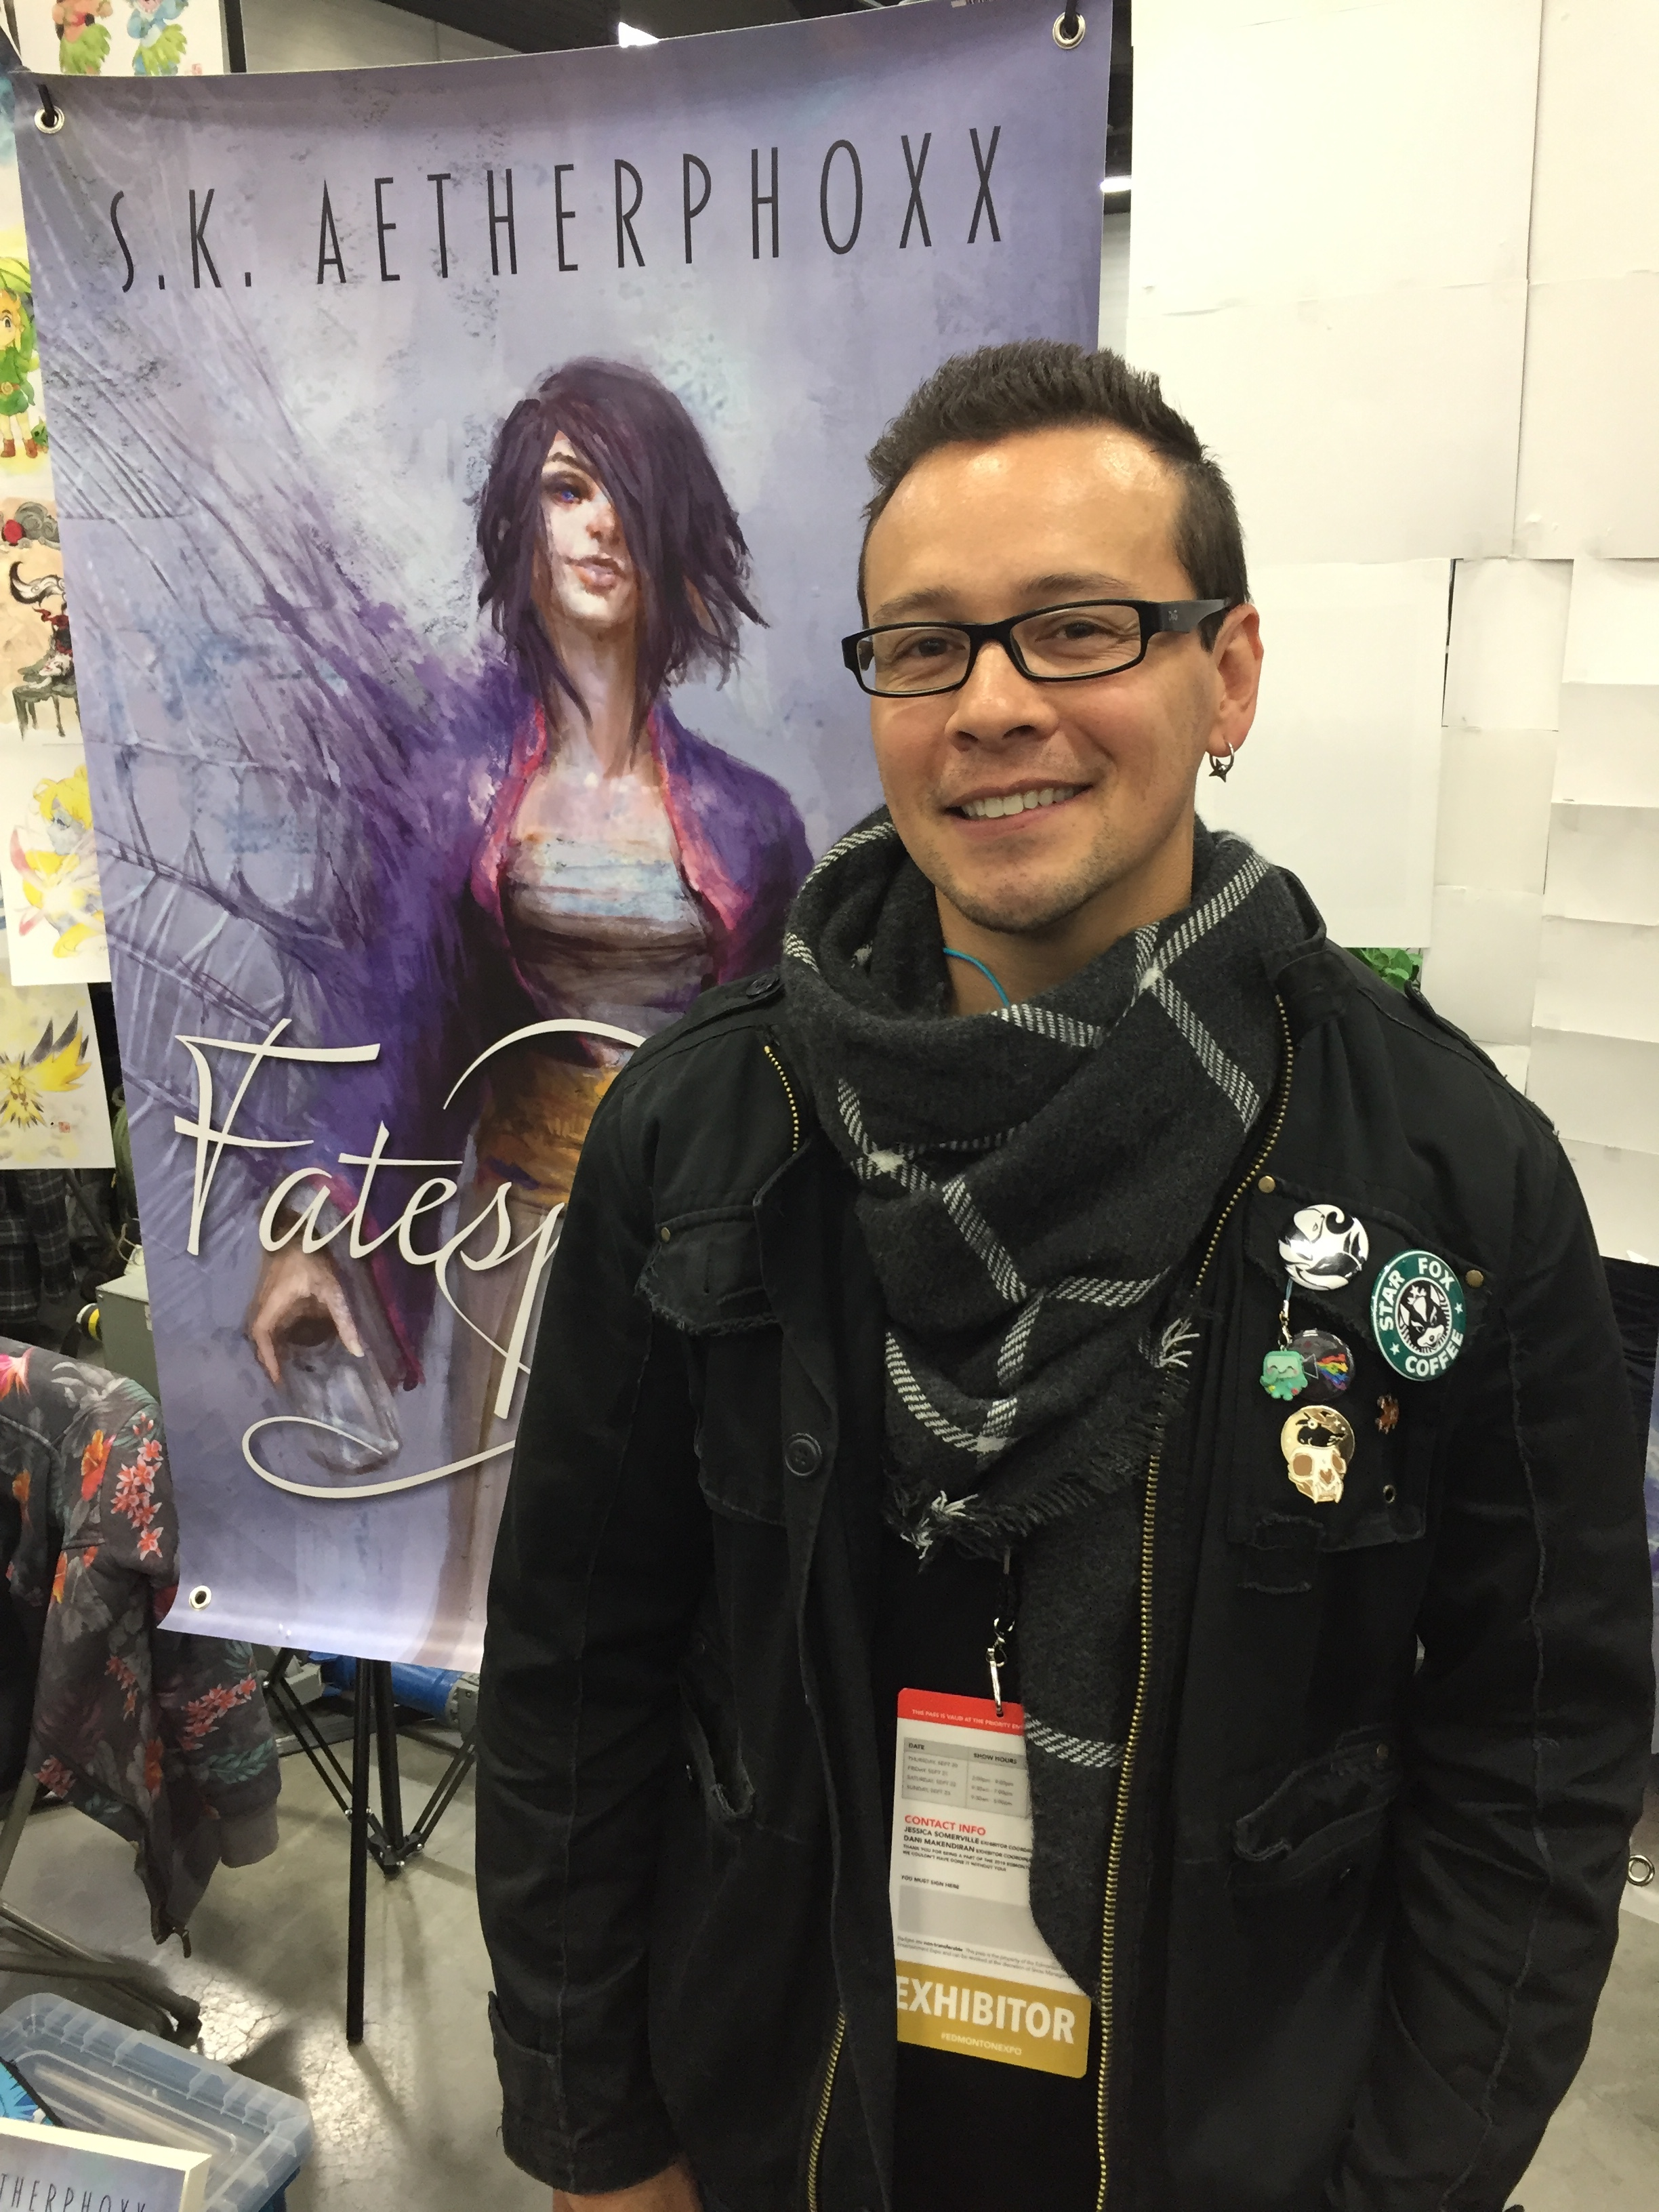 Author S.K. Aetherphoxx at the 2018 Edmonton Expo.   (Photo credit: Charles Cousins)